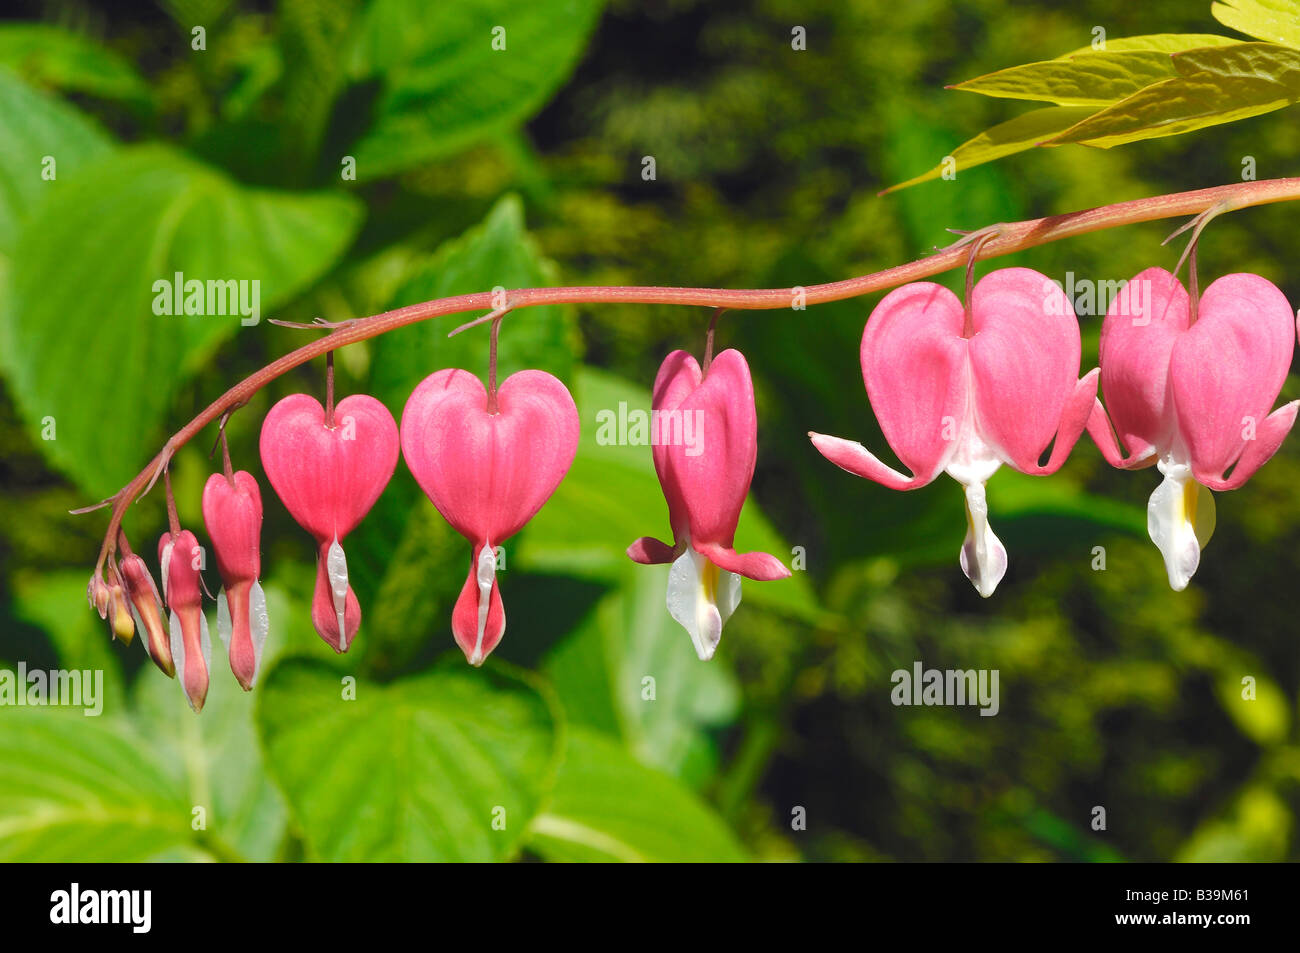 Pink Heart Shaped Flower Growing At Manito Park In The City Of Stock